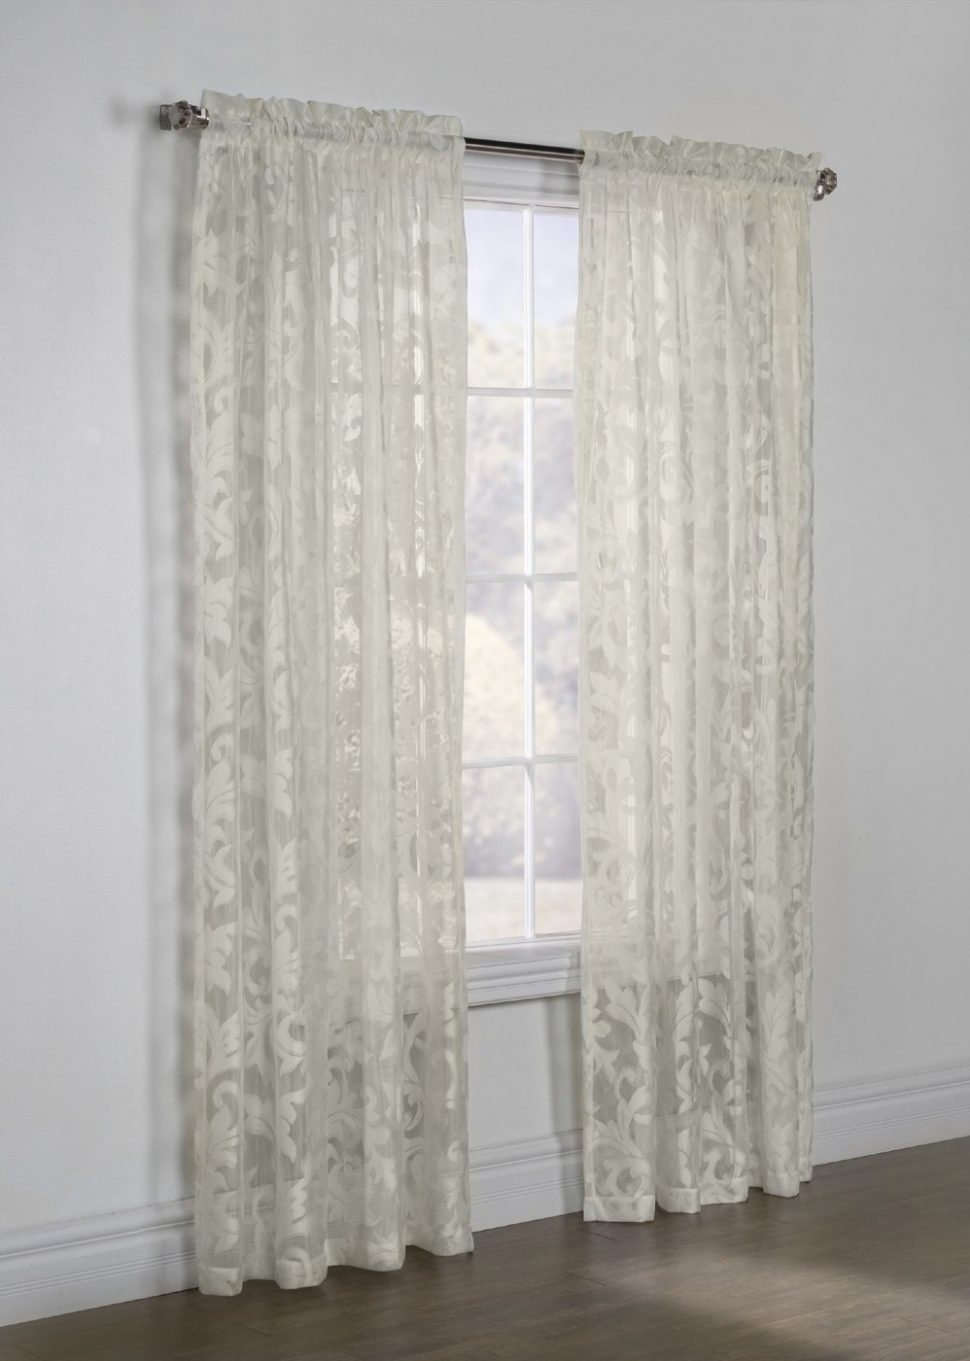 Curtain Paul Ryan Versus Joe Biden Sets Up Irish Catholic With Lace Curtain Sets (View 7 of 25)